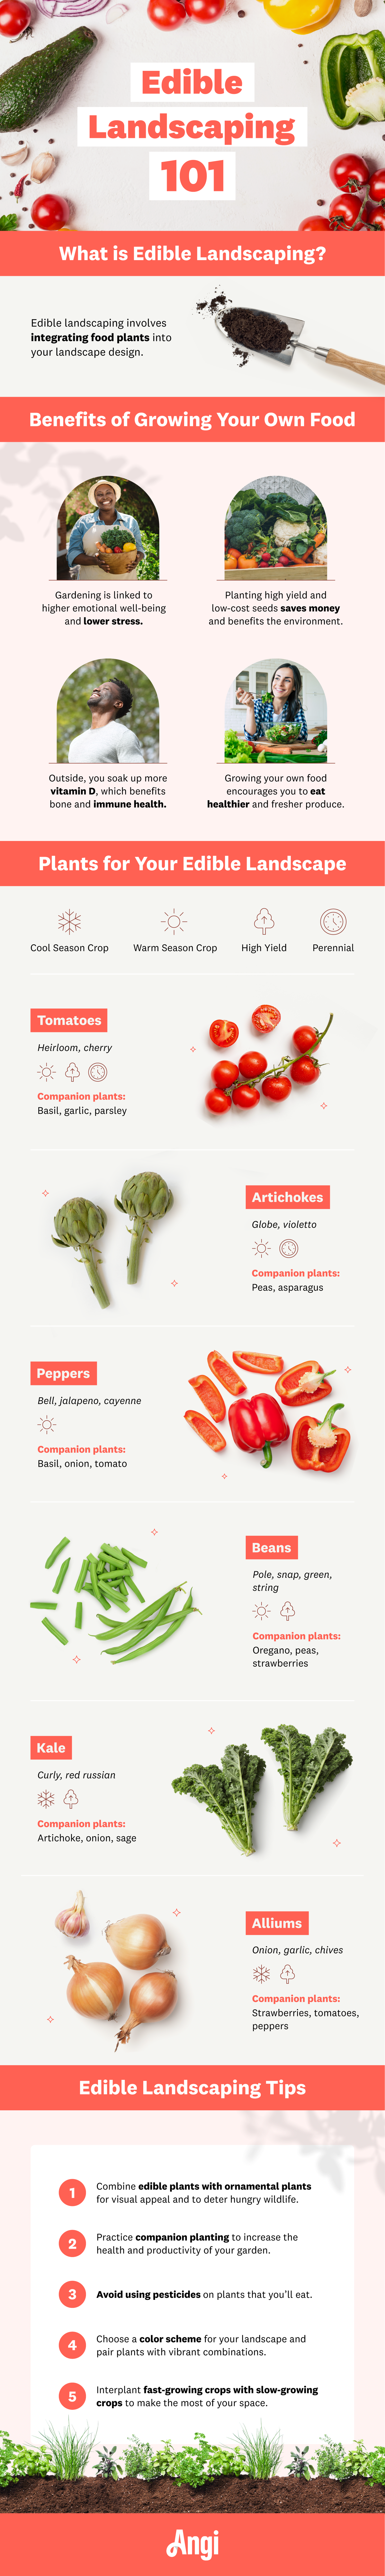 Edible Landscaping: 8 Food Plants For Your Yard [Infographic]